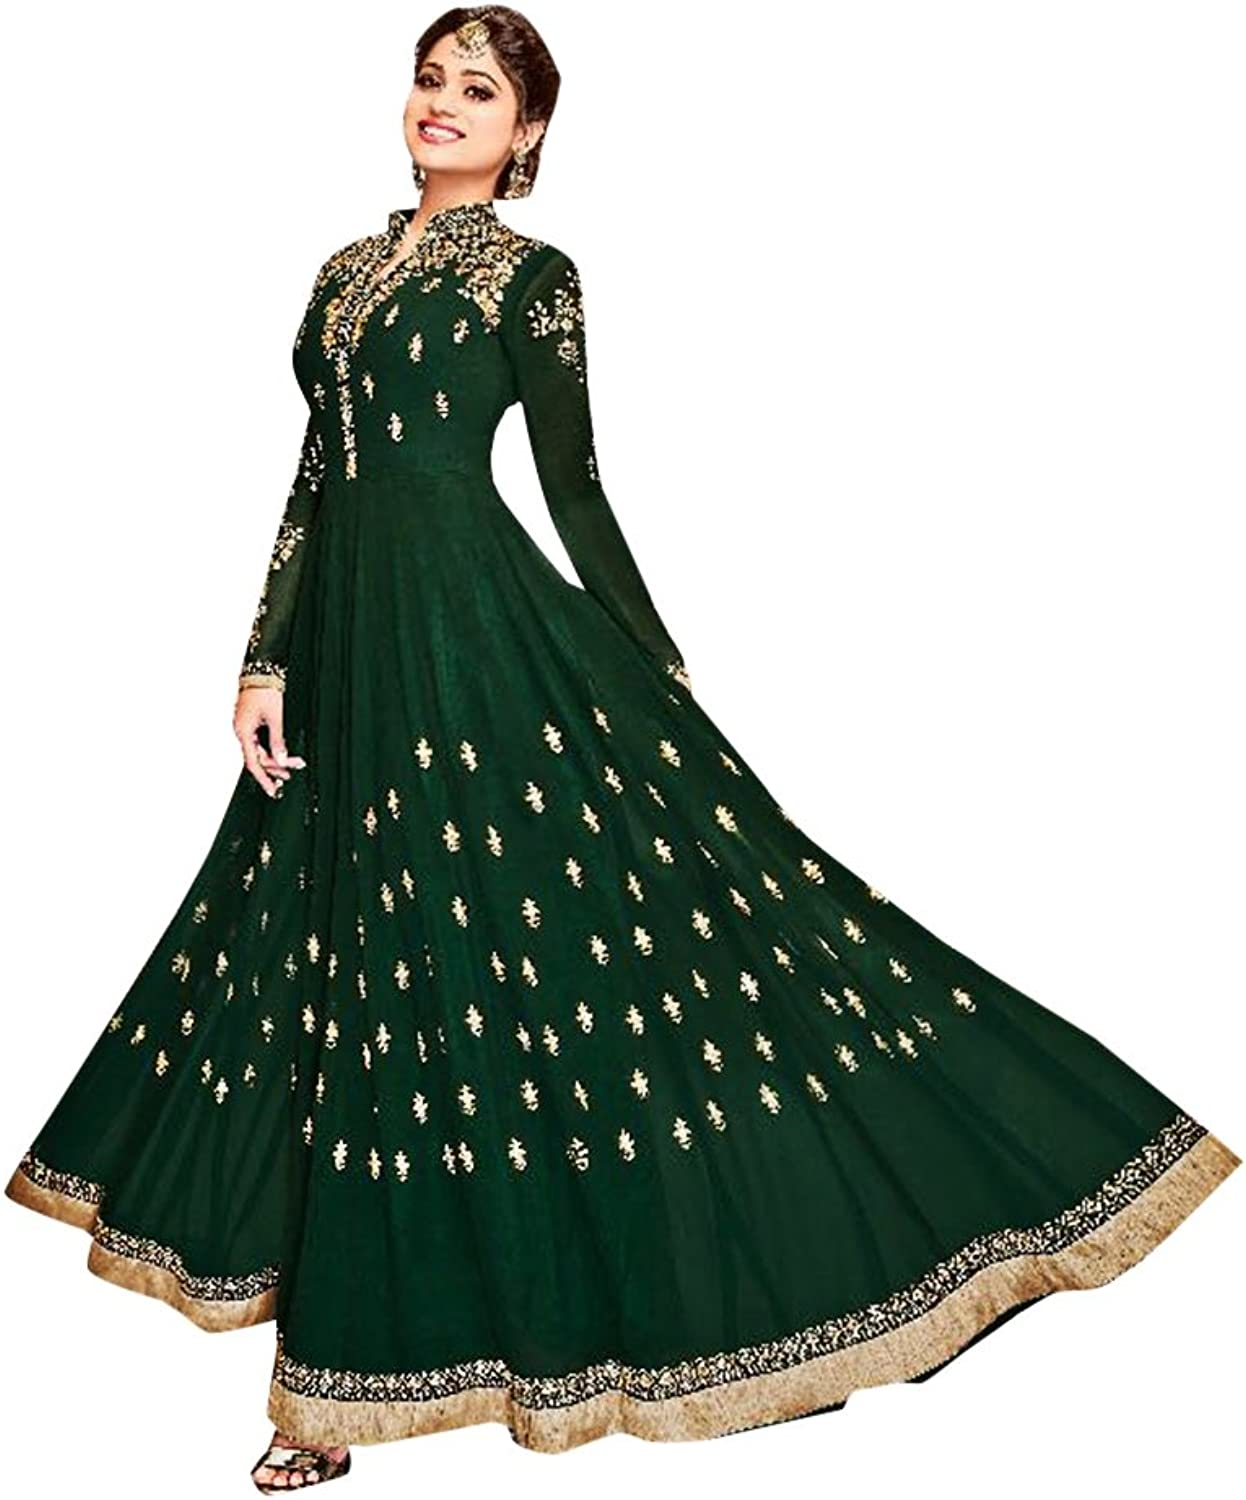 Bollywood Collection Anarkali Dresses for women Salwar Kameez Ceremony Wedding 910 4